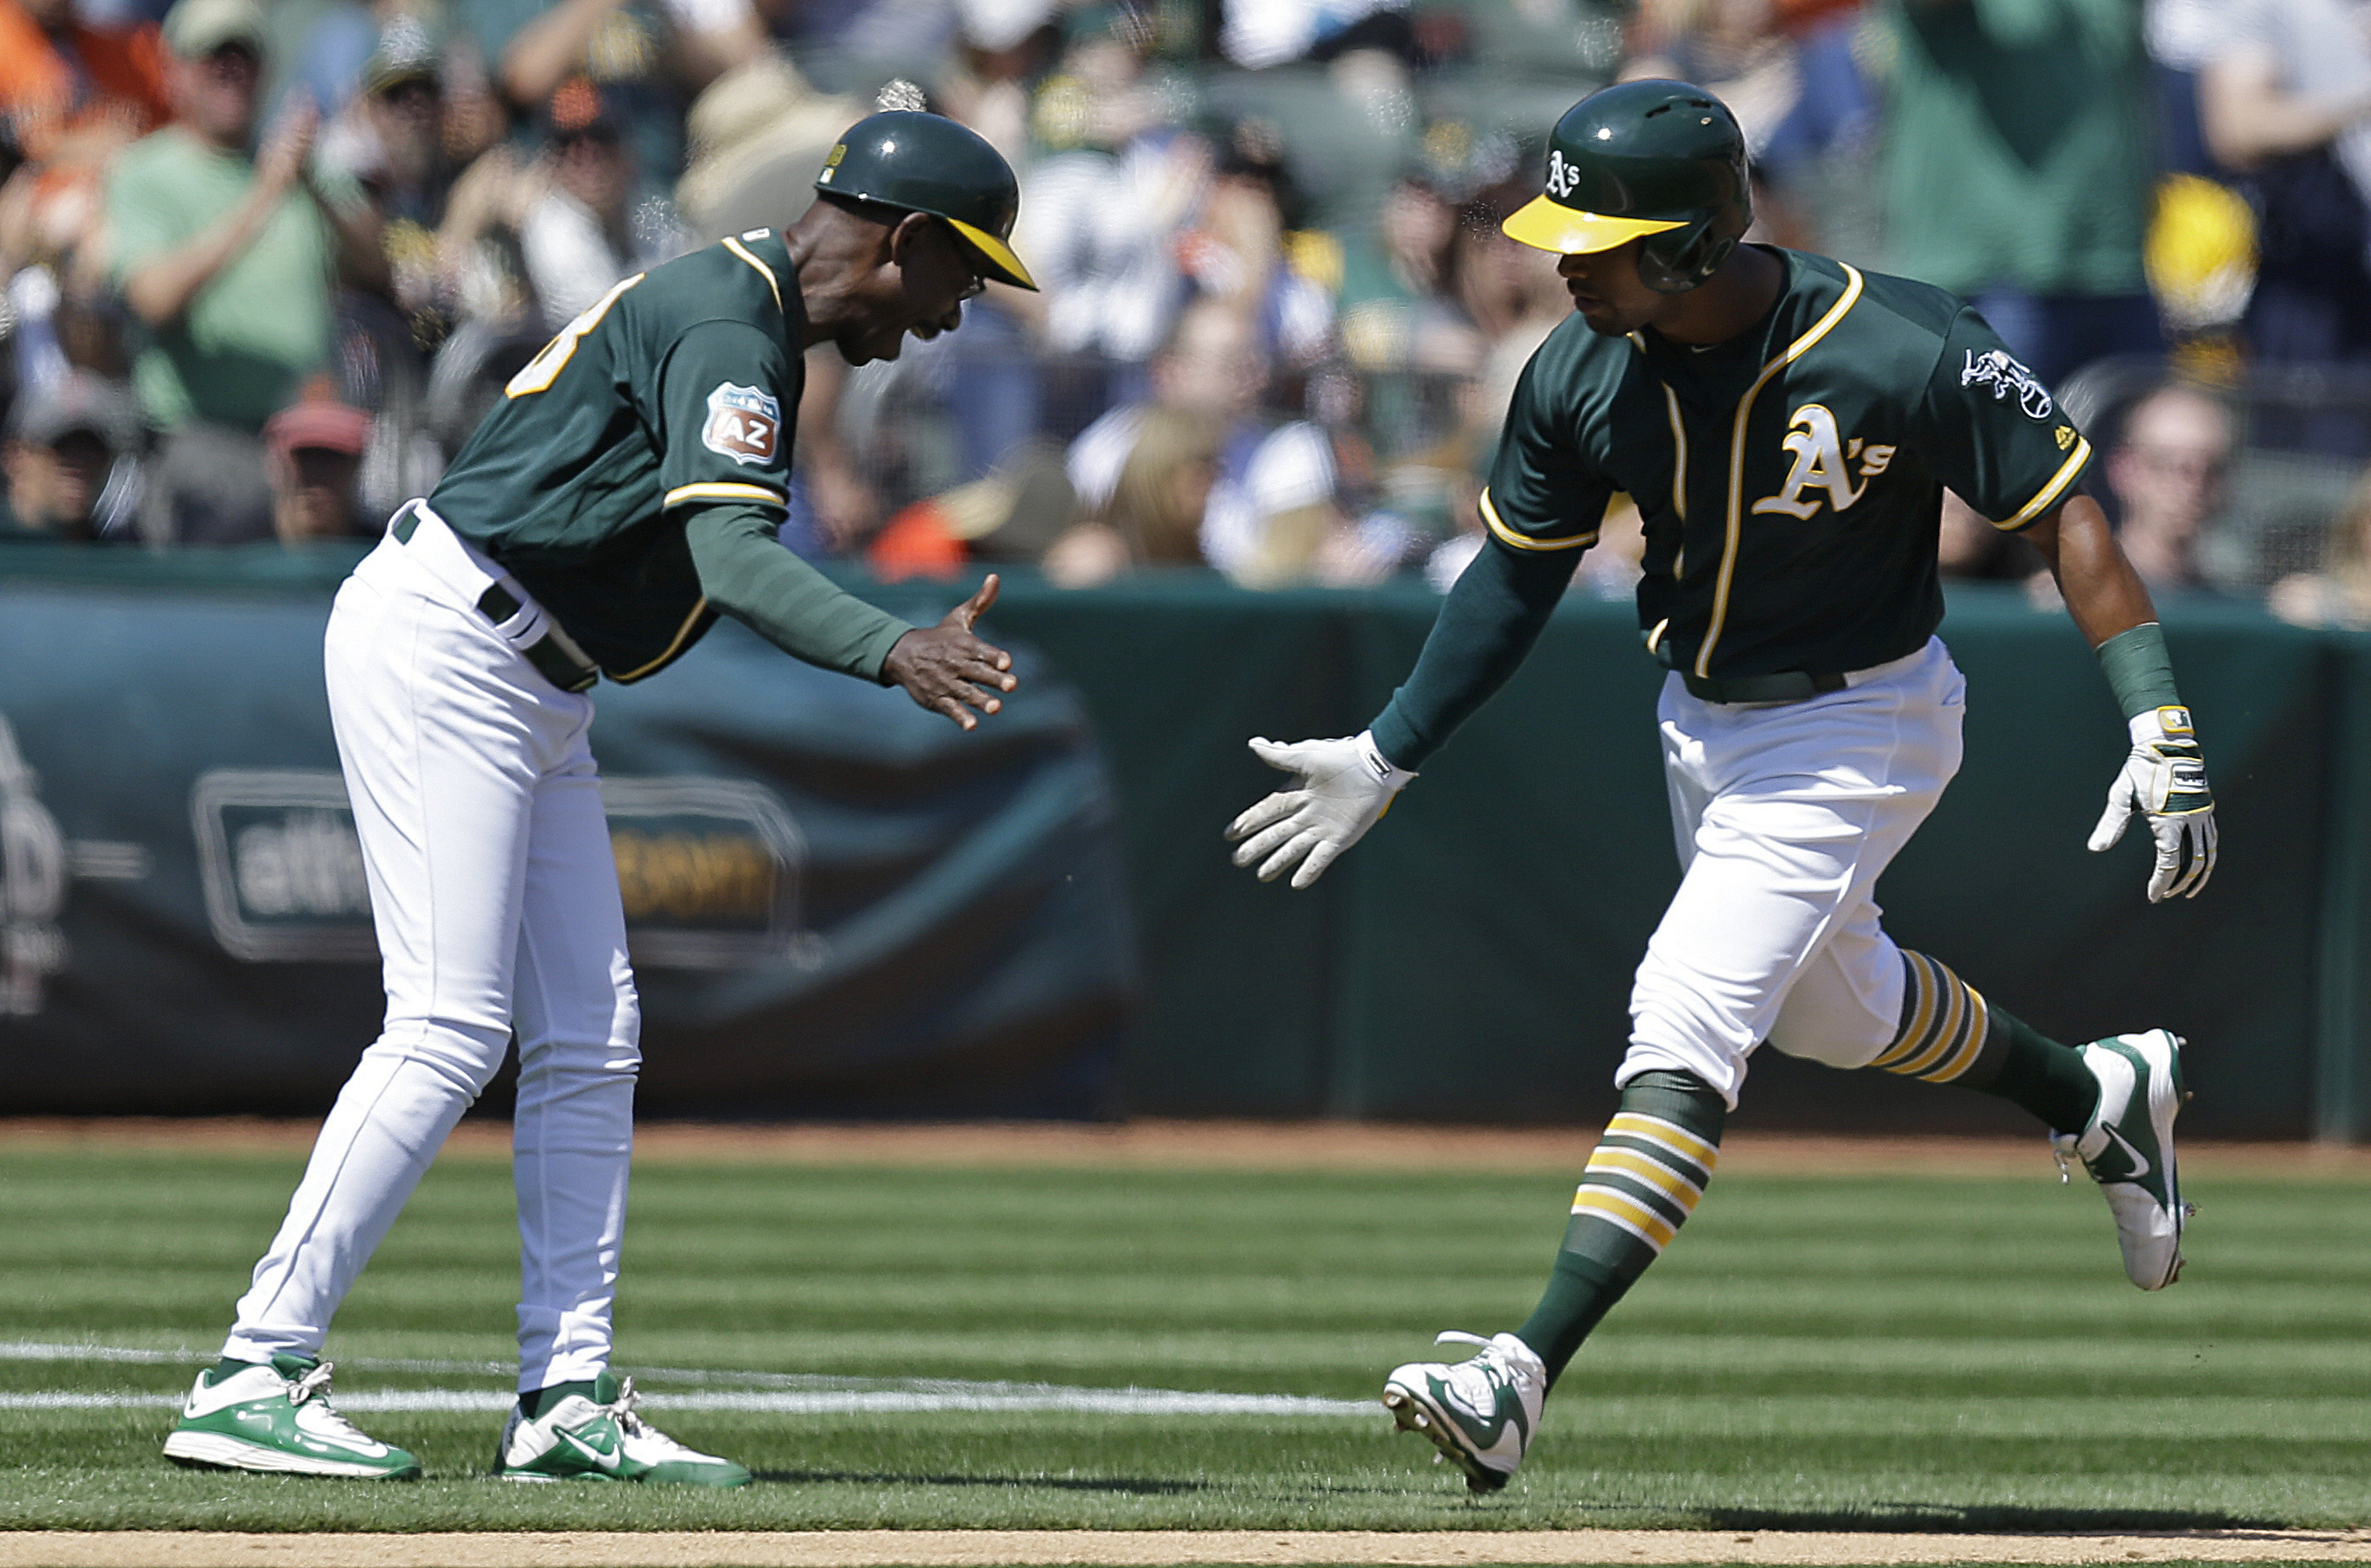 Oakland Athletics' Khris Davis, right, celebrates with third base coach Ron Washington after hitting a home run off San Francisco Giants' Matt Cain in the third inning of an exhibition baseball game Saturday, April 2, 2016, in Oakland, Calif. (AP Photo/Be